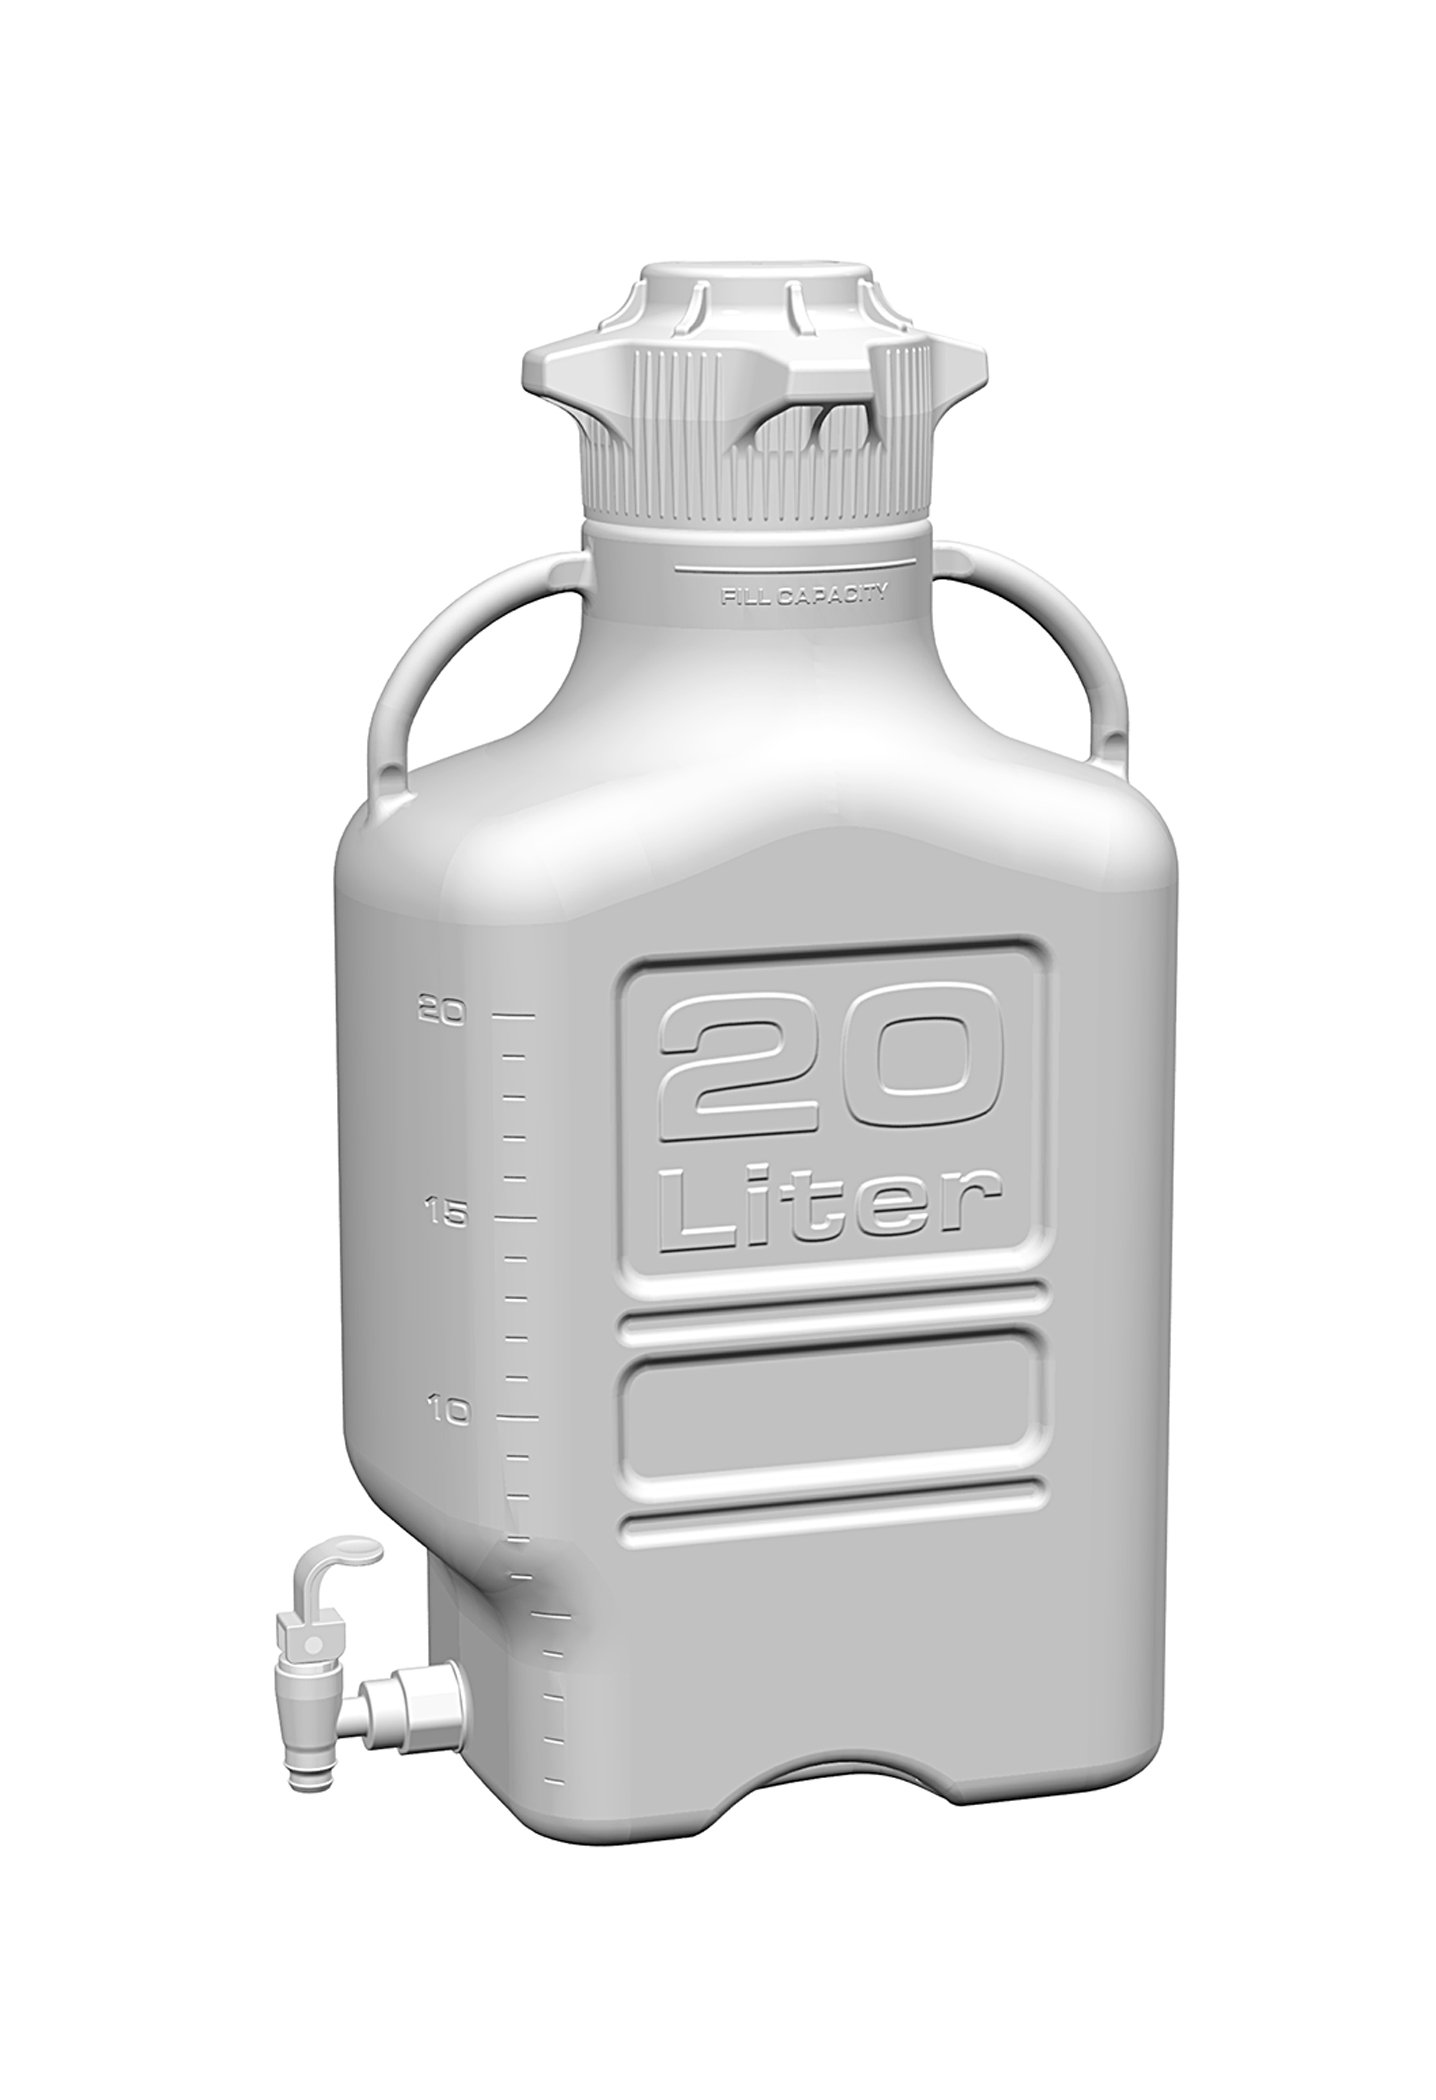 EZgrip 20L (5 Gal) Autoclavable Polypropylene Space Saving Carboy with Leakproof Spigot, Wide Mouth 120mm VersaCap and 26.5L Max Capacity